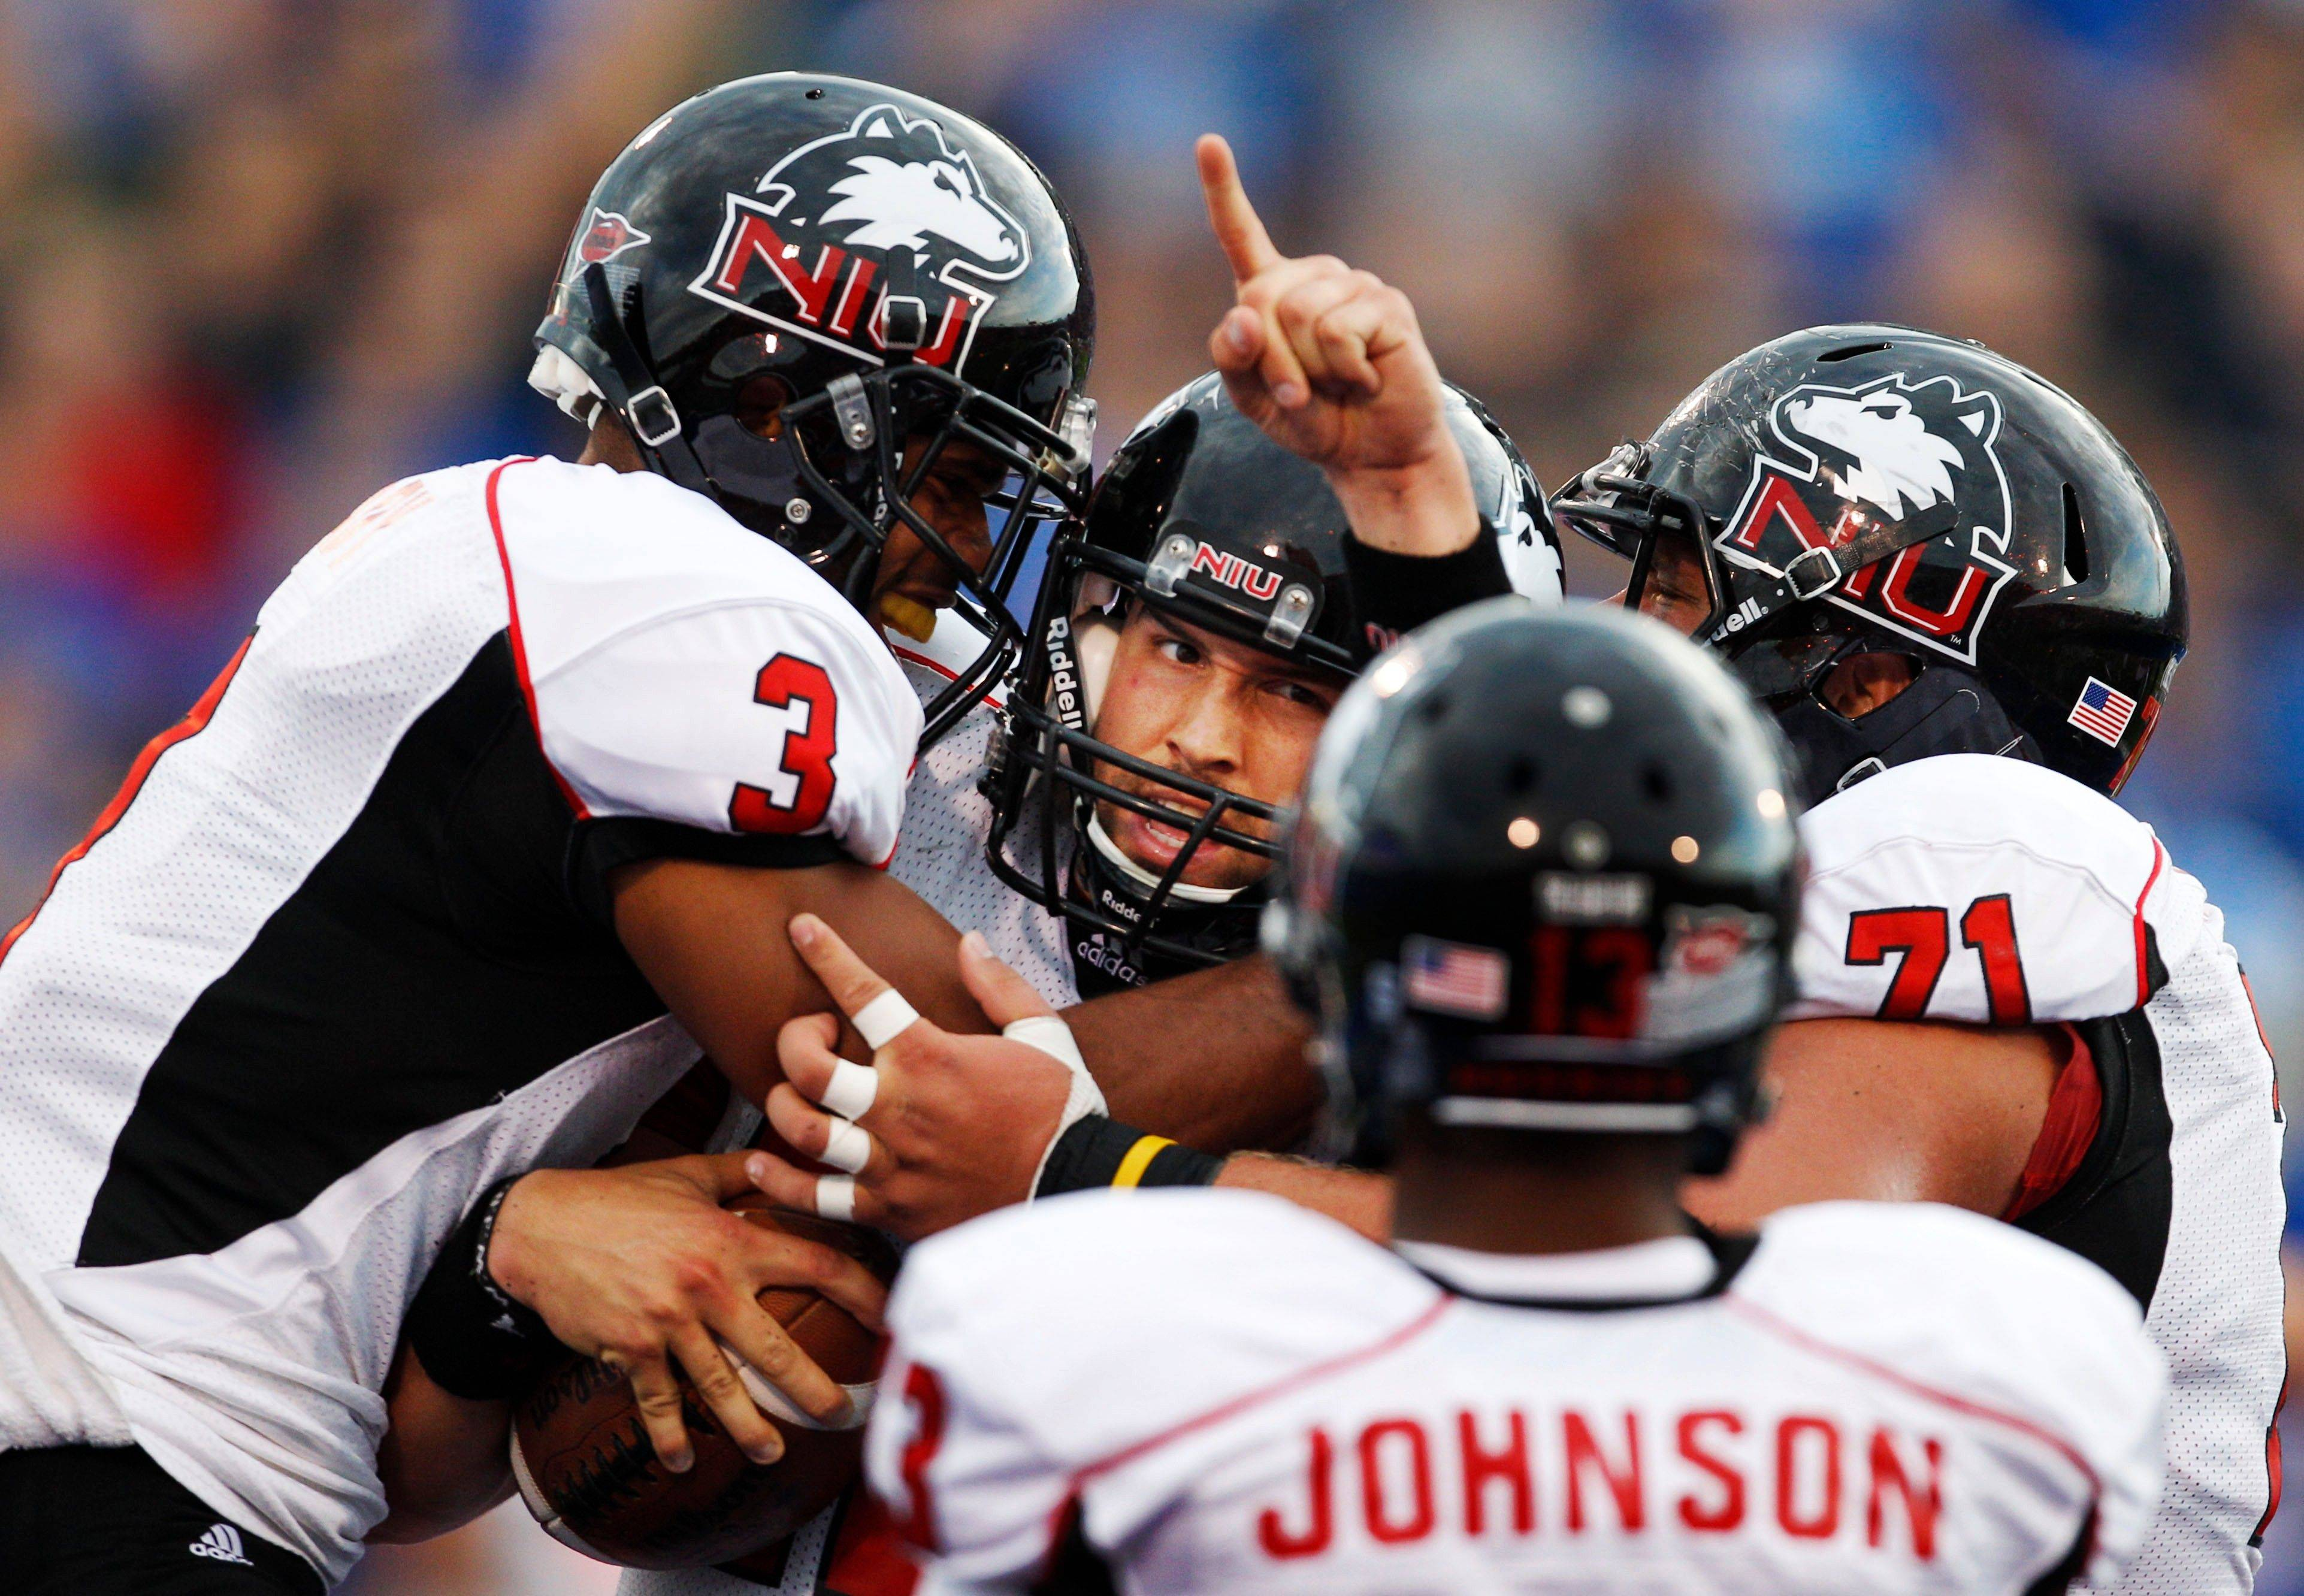 Northern Illinois quarterback Chandler Harnish, middle, celebrates a touchdown with teammates DeMarcus Grady (3) and Scott Wedige (71) during the first half Saturday night.